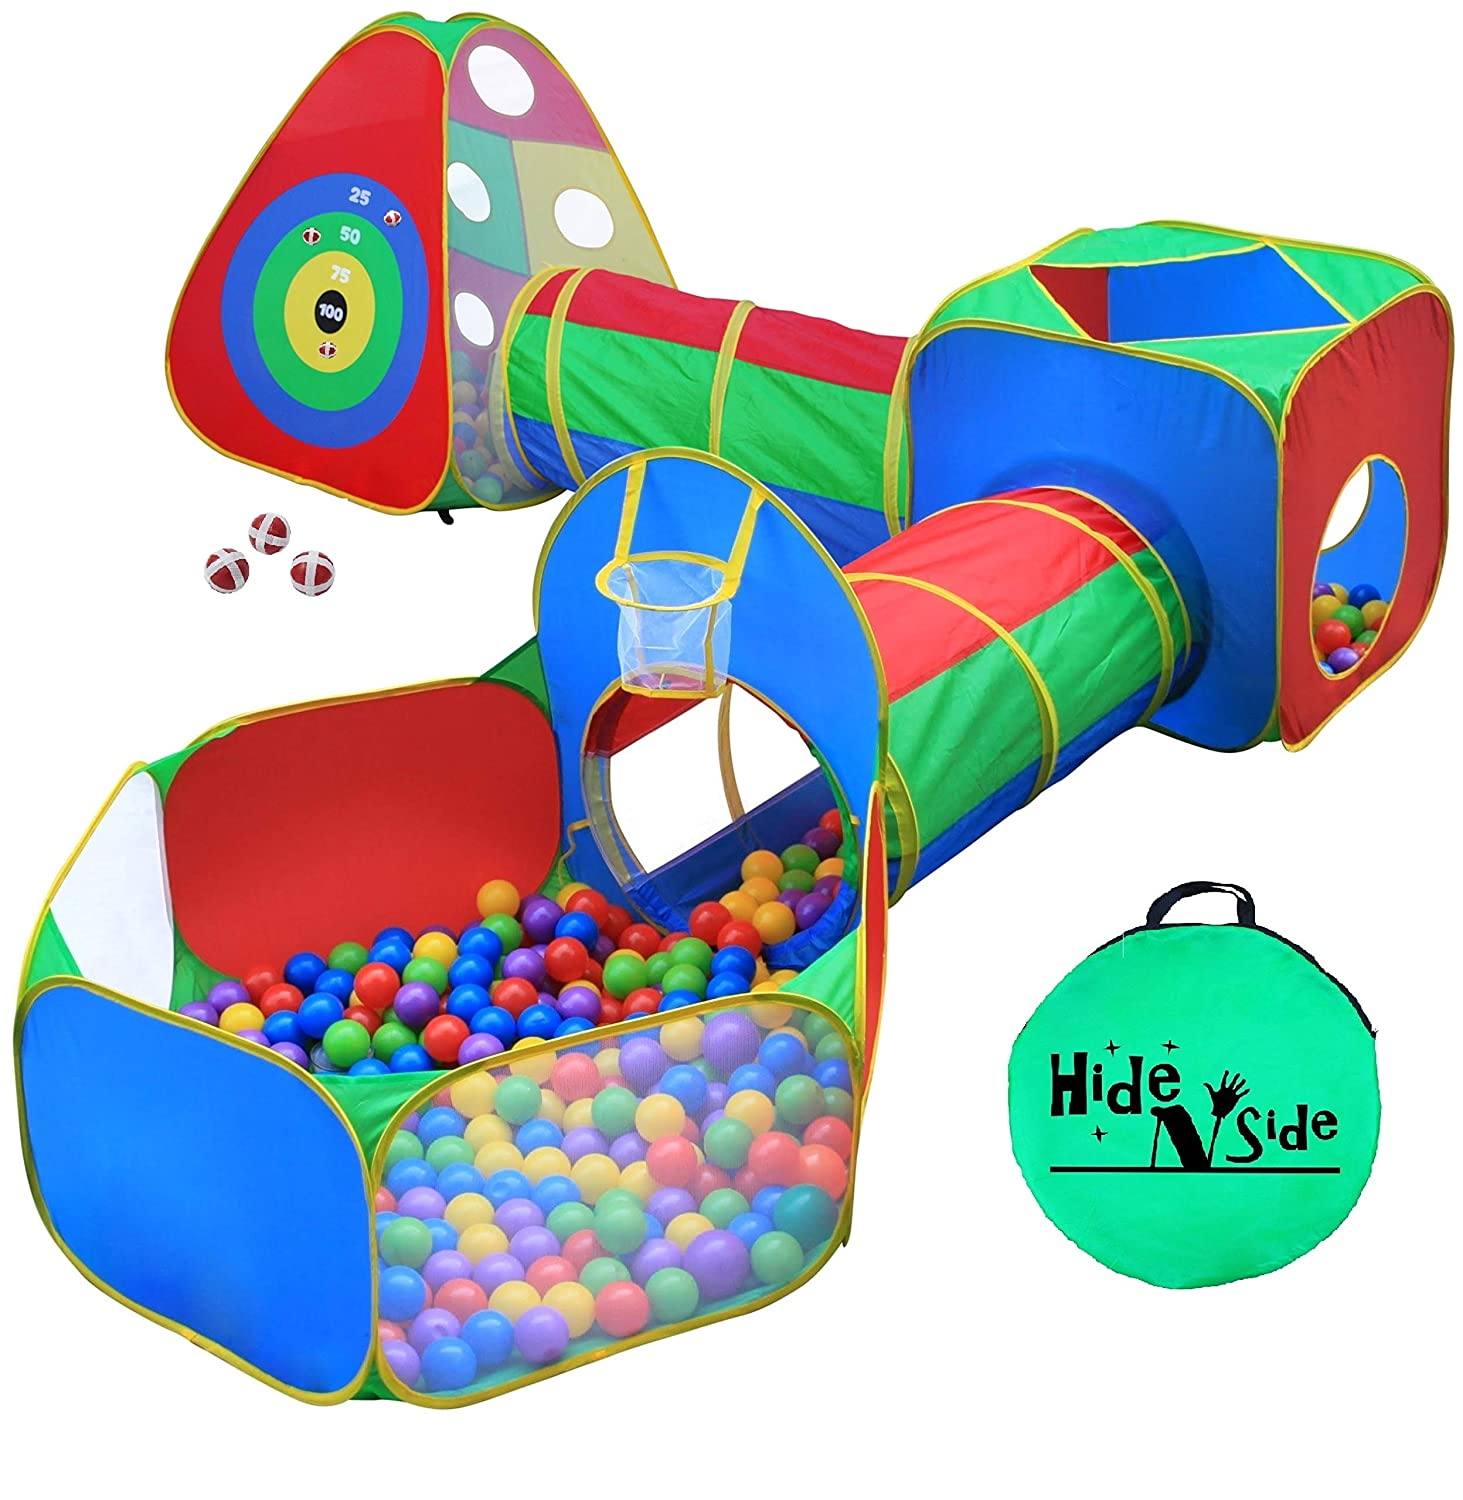 5pc Kids Ball Pit Tents and Tunnels, Toddler Jungle Gym Play Tent with Play Crawl Tunnel Toy, for Boys babies infants Children, w/ Basketball Hoop best backyard playset